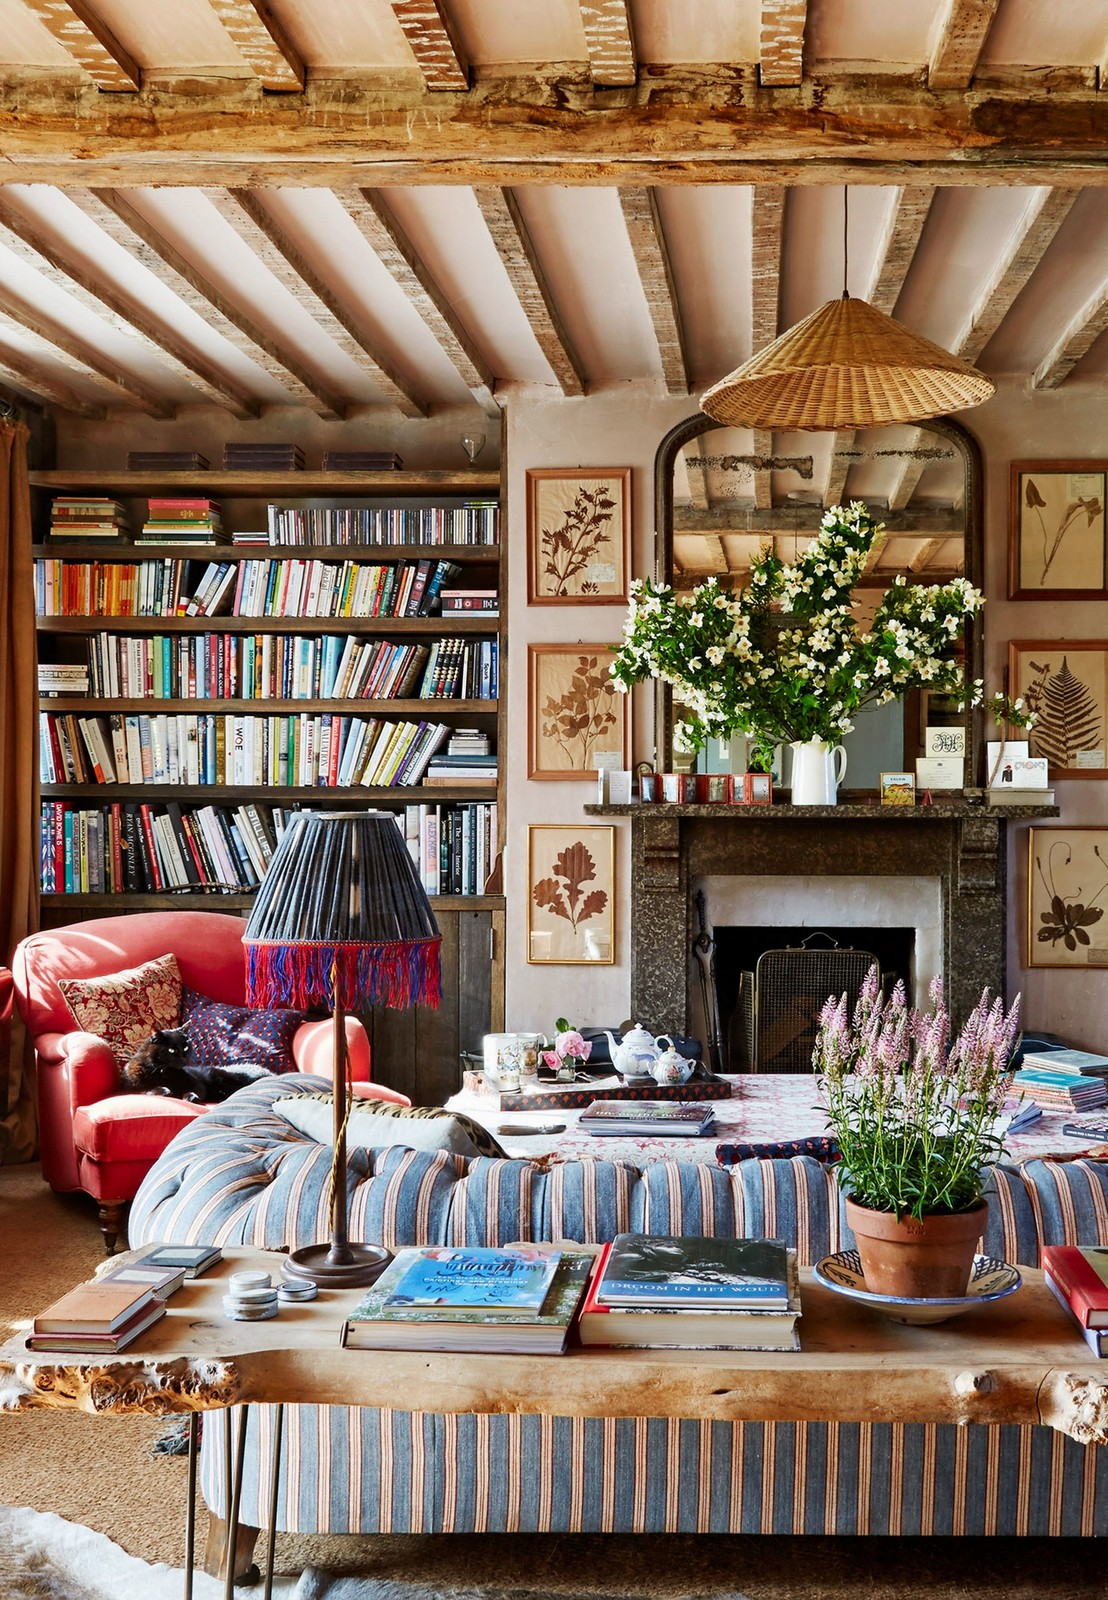 D cor inspiration dreamy english country home by amanda for House decor sale